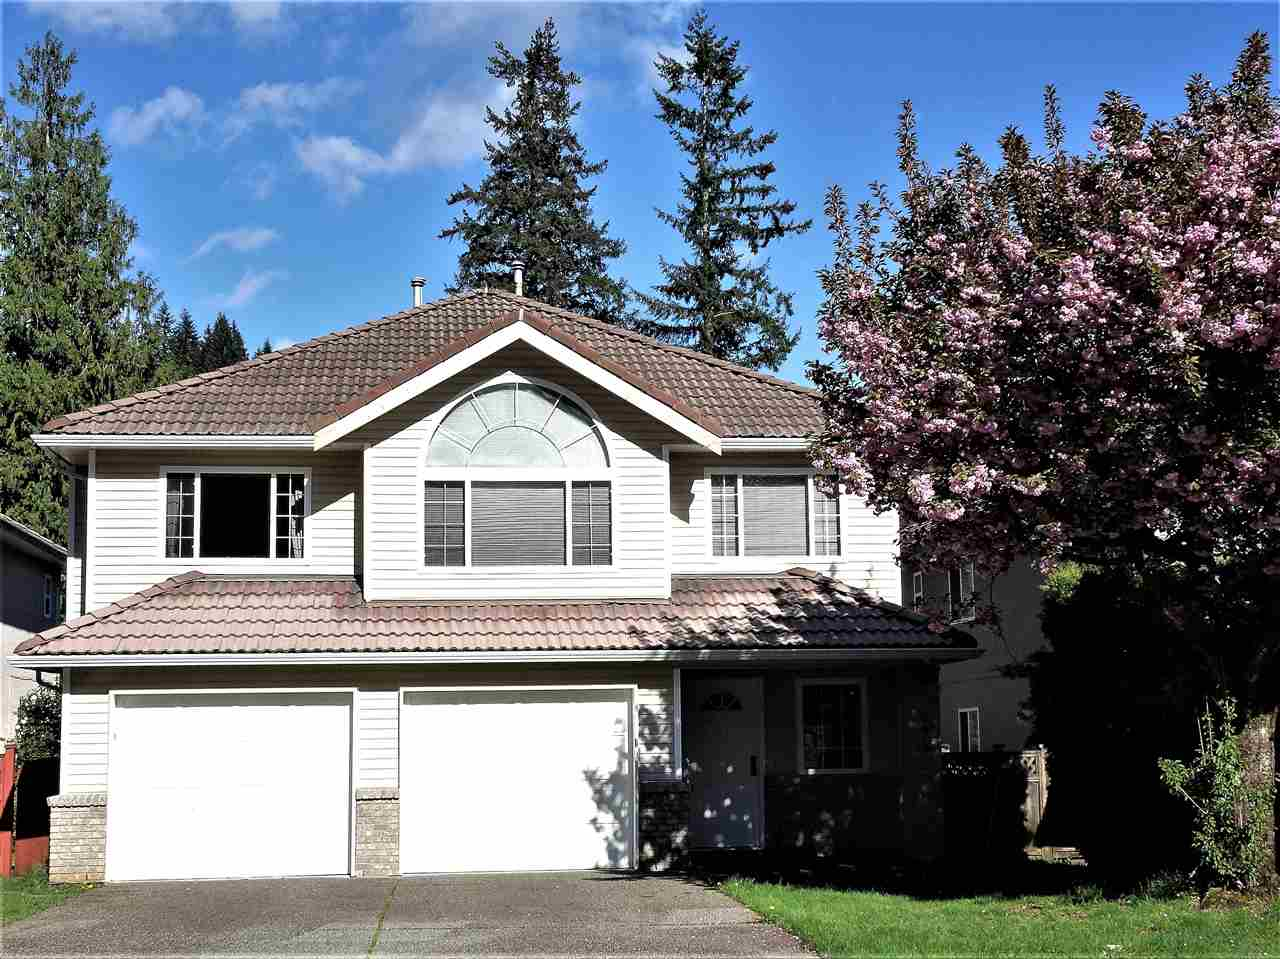 Detached at 1477 GALETTE PLACE, Coquitlam, British Columbia. Image 1